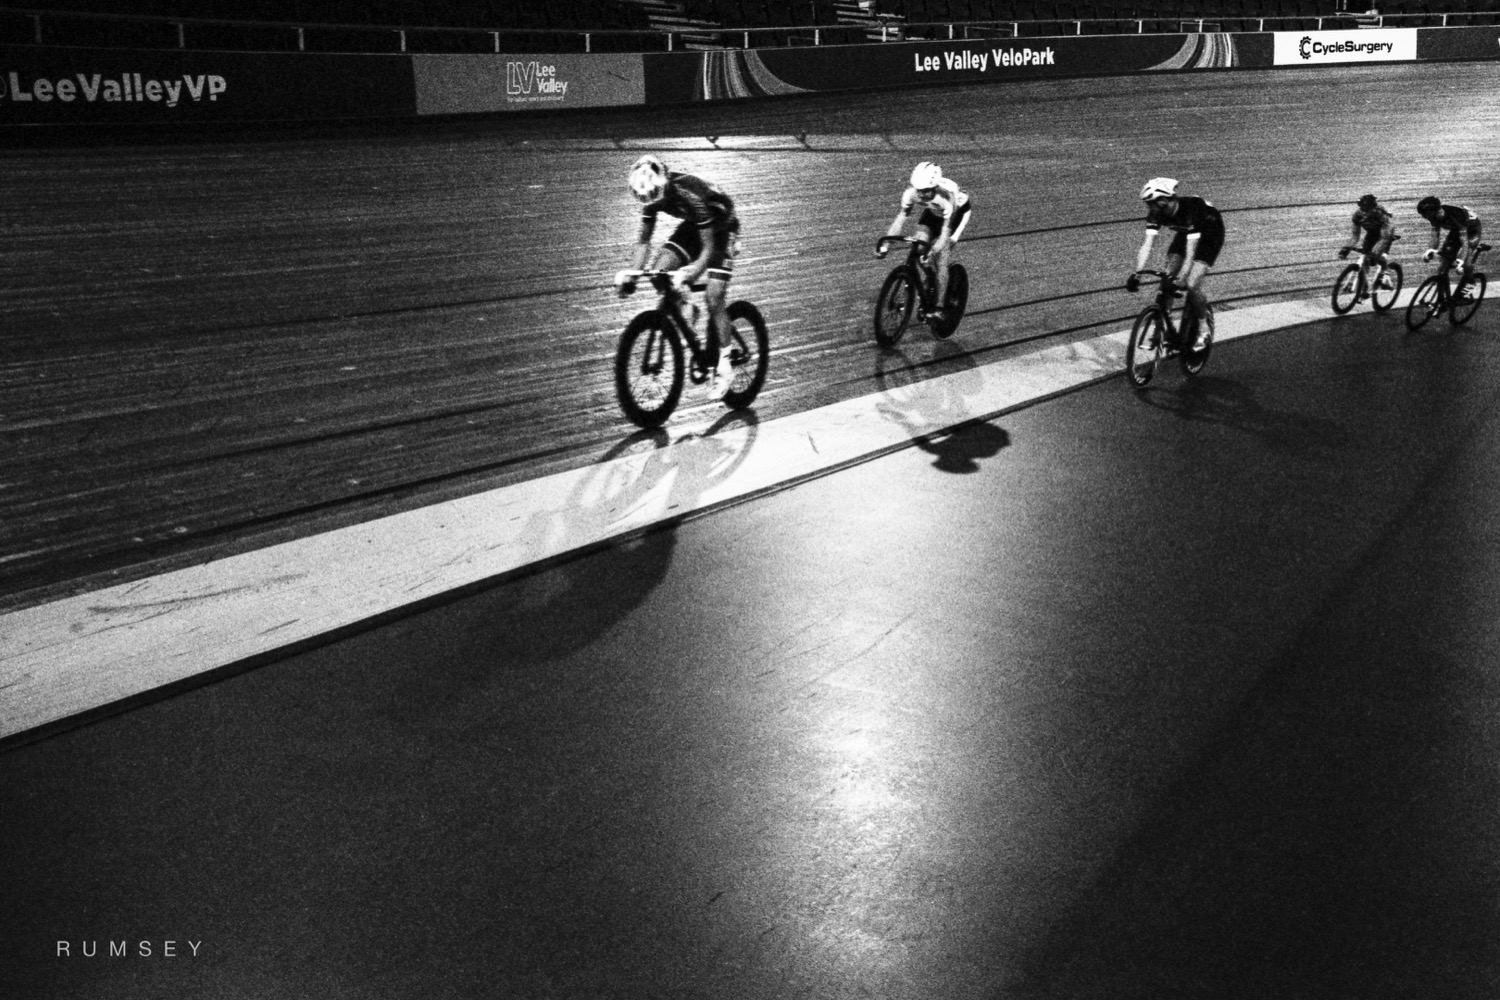 track racing at Lee Valley velodrome